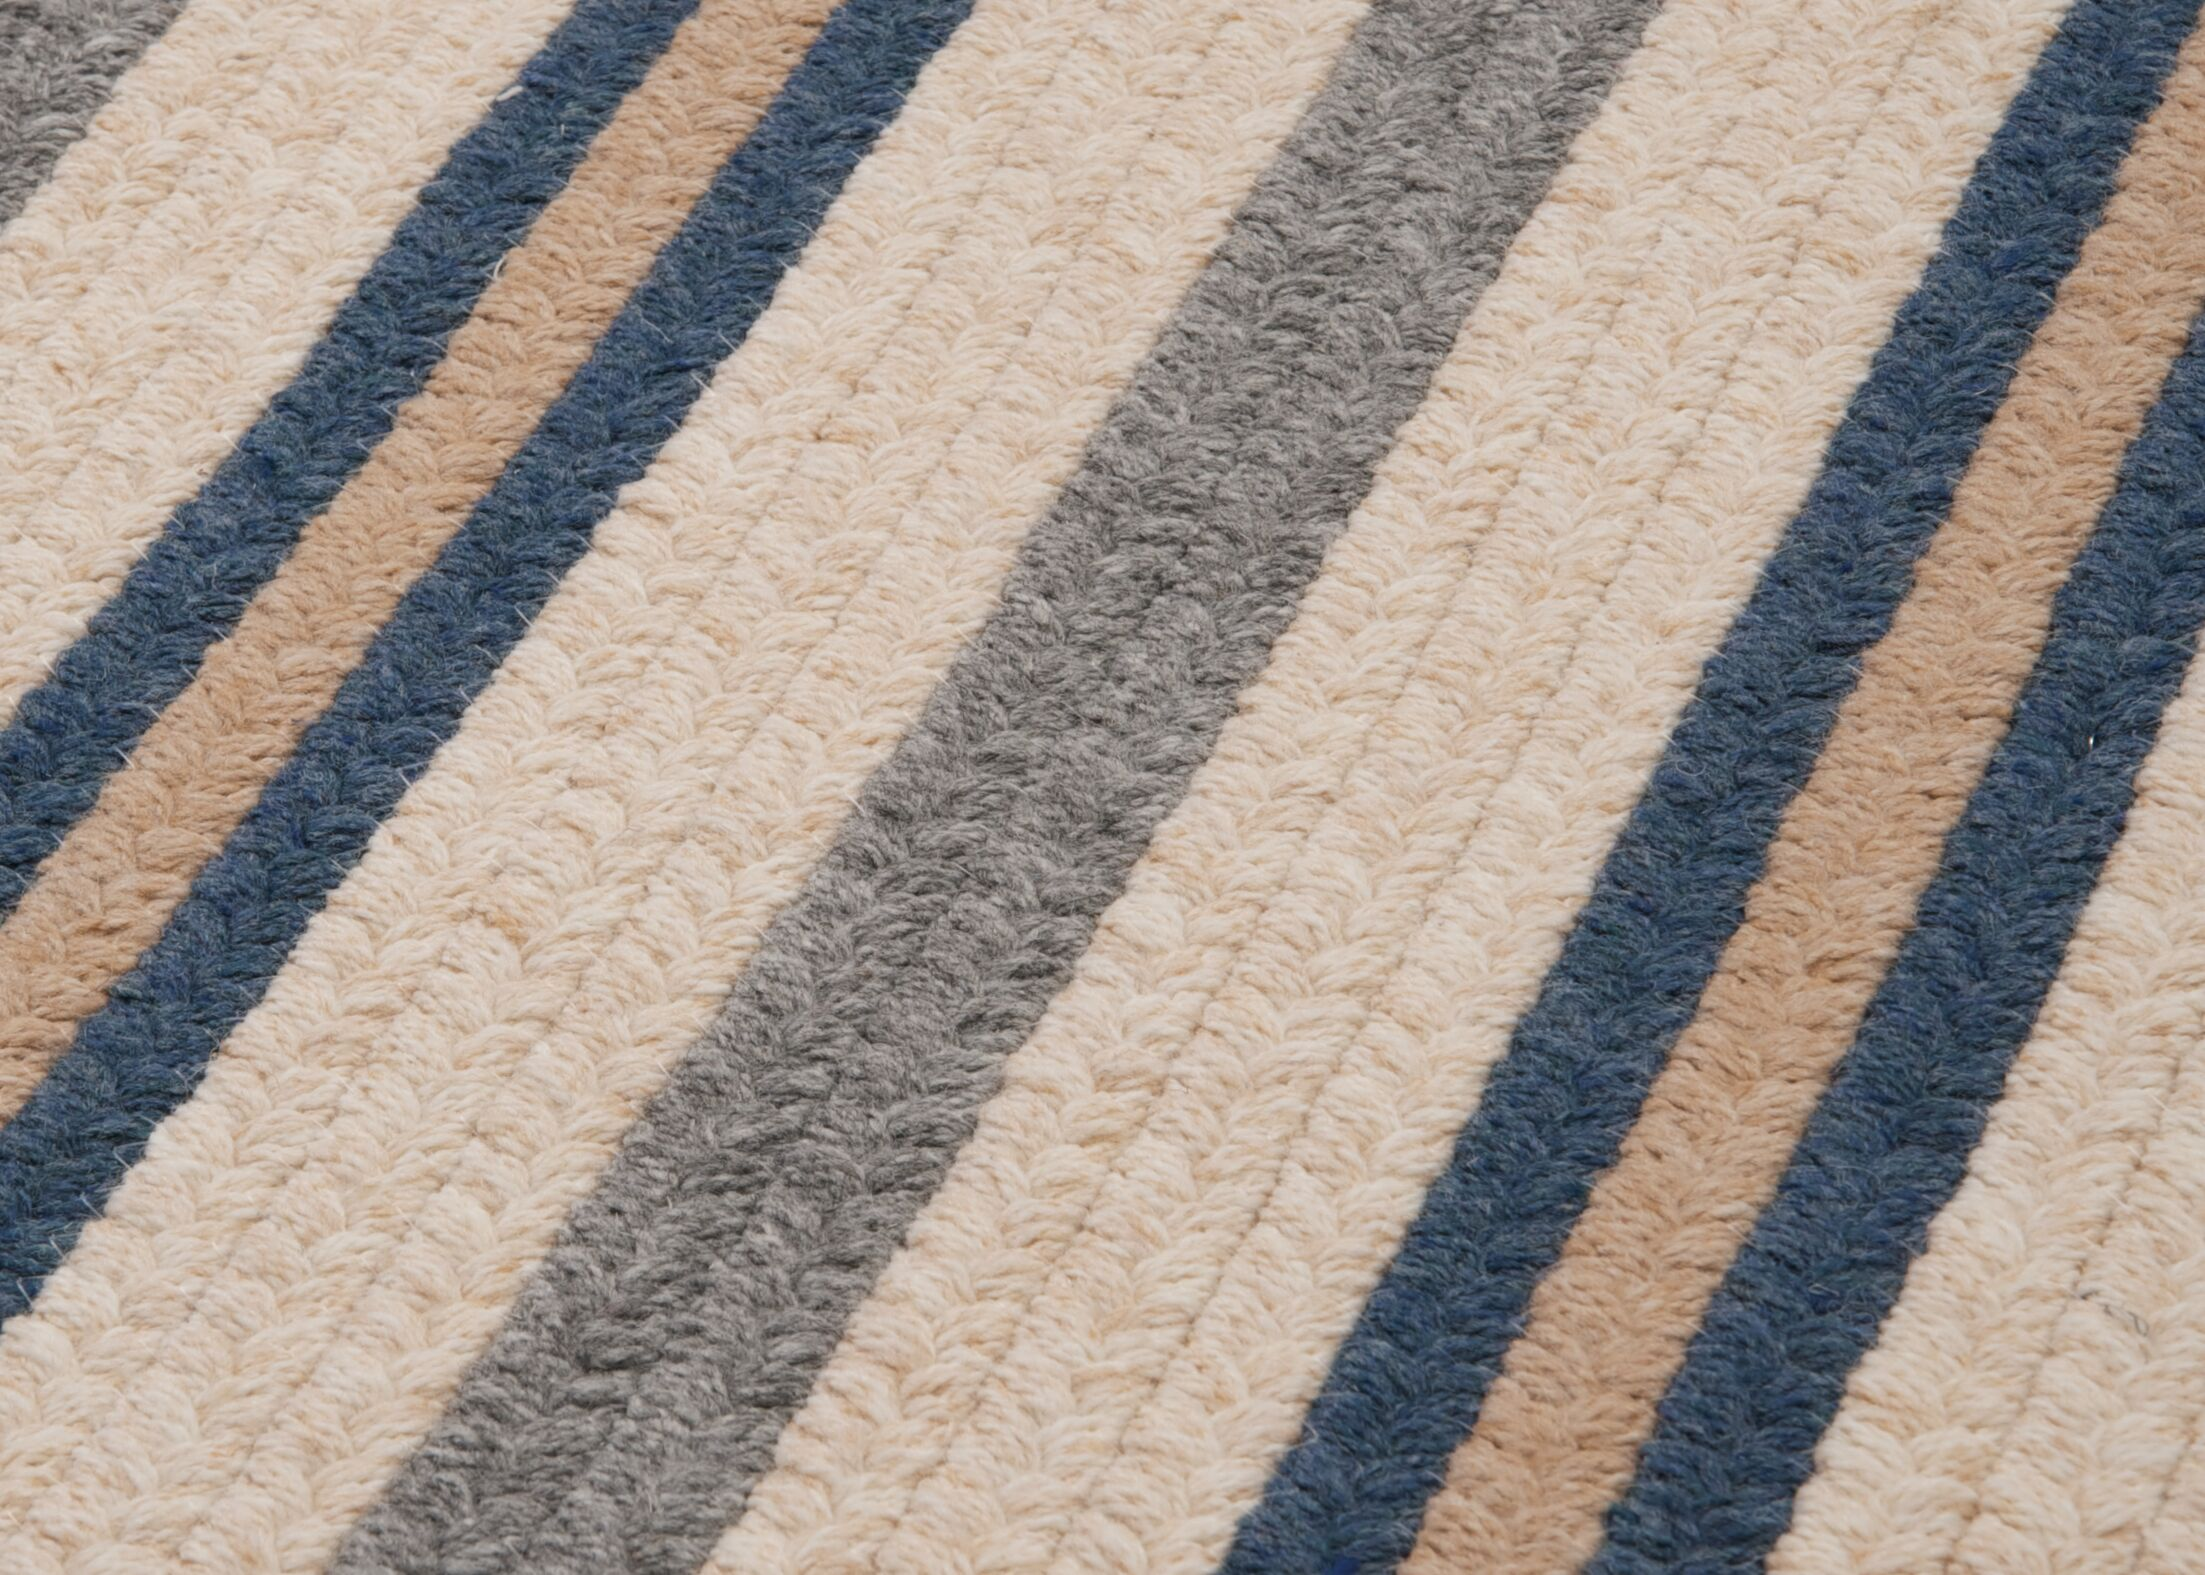 Allure Polo Blue Area Rug Rug Size: Square 8'